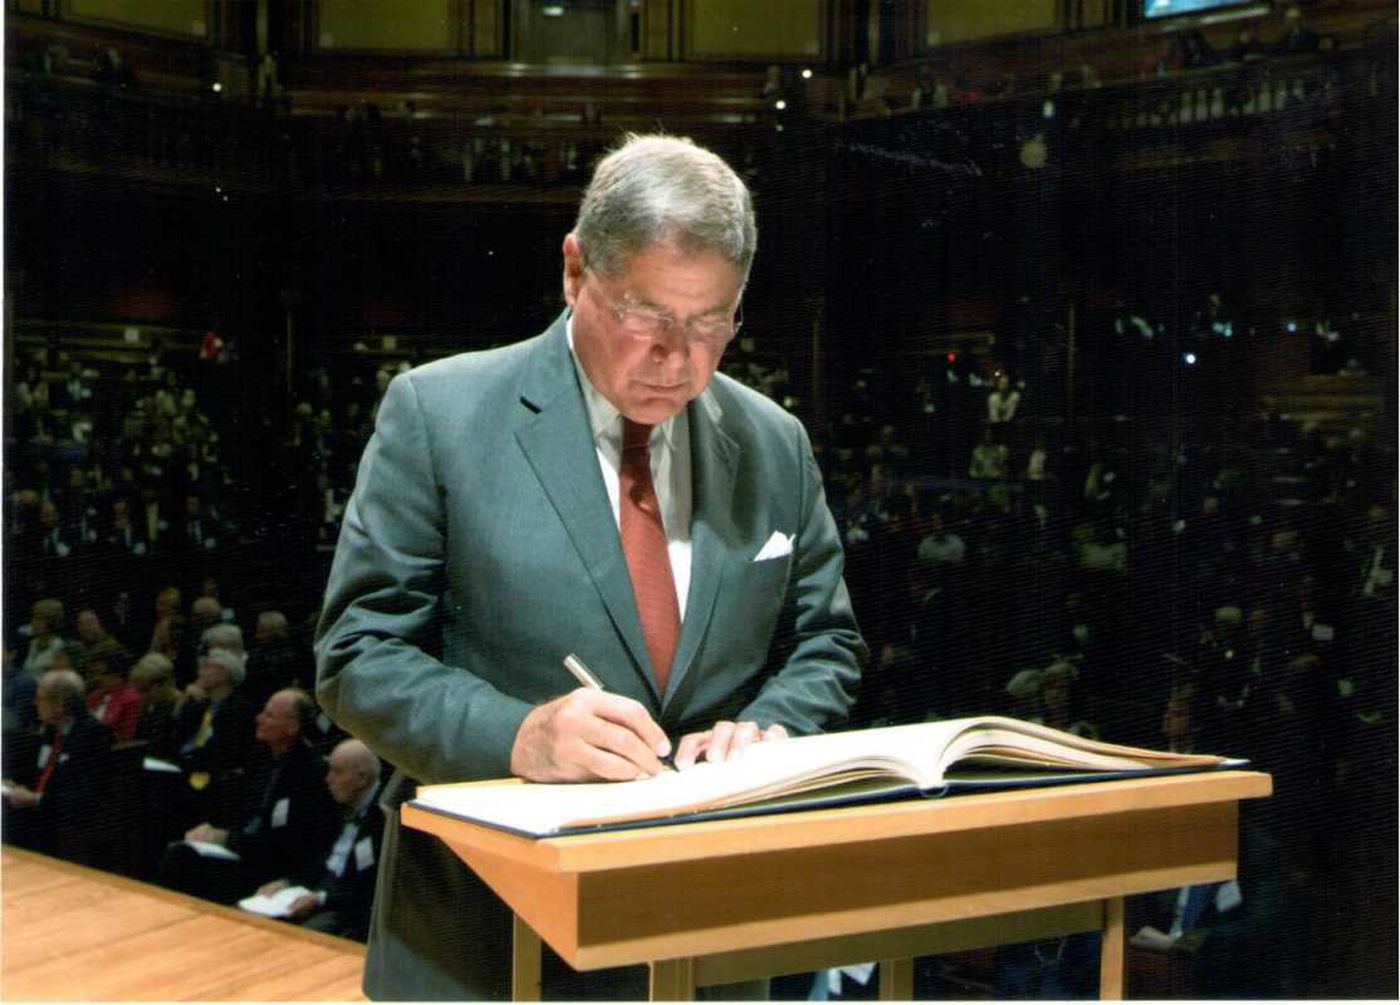 Knight Foundation CEO Alberto Ibarguen never far from own immigrant story